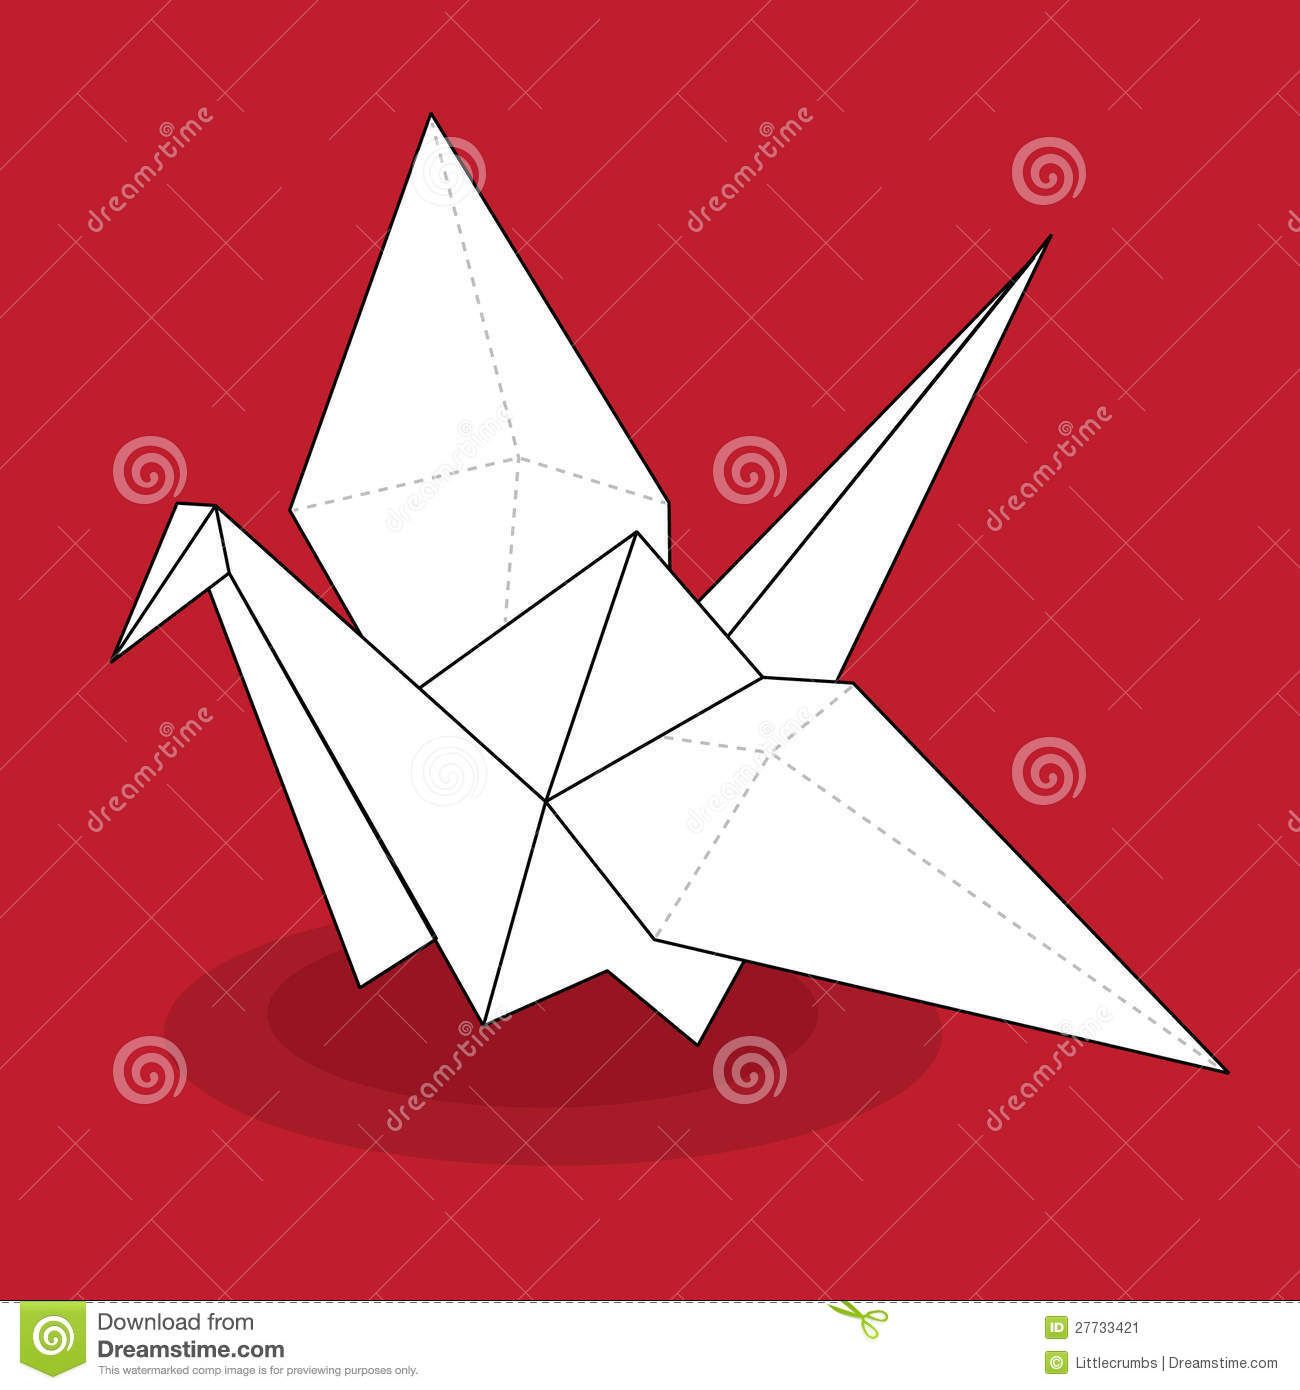 Origami Crane Stock Image - Image: 27733421: www.dreamstime.com/stock-image-origami-crane-image27733421